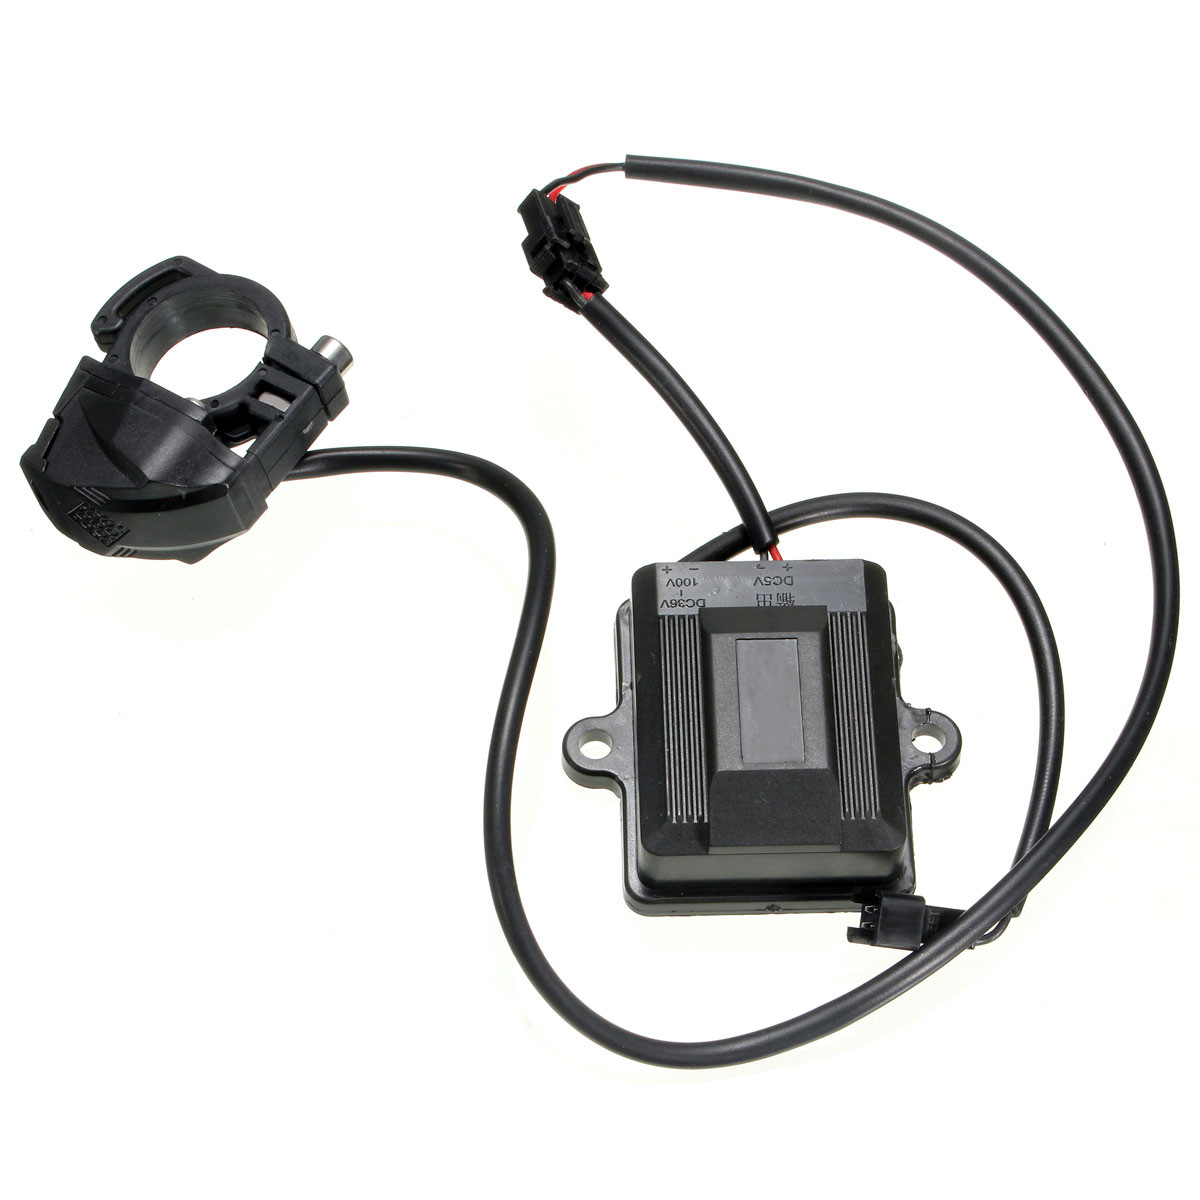 bicycle dynamo usb charger reviews online shopping. Black Bedroom Furniture Sets. Home Design Ideas